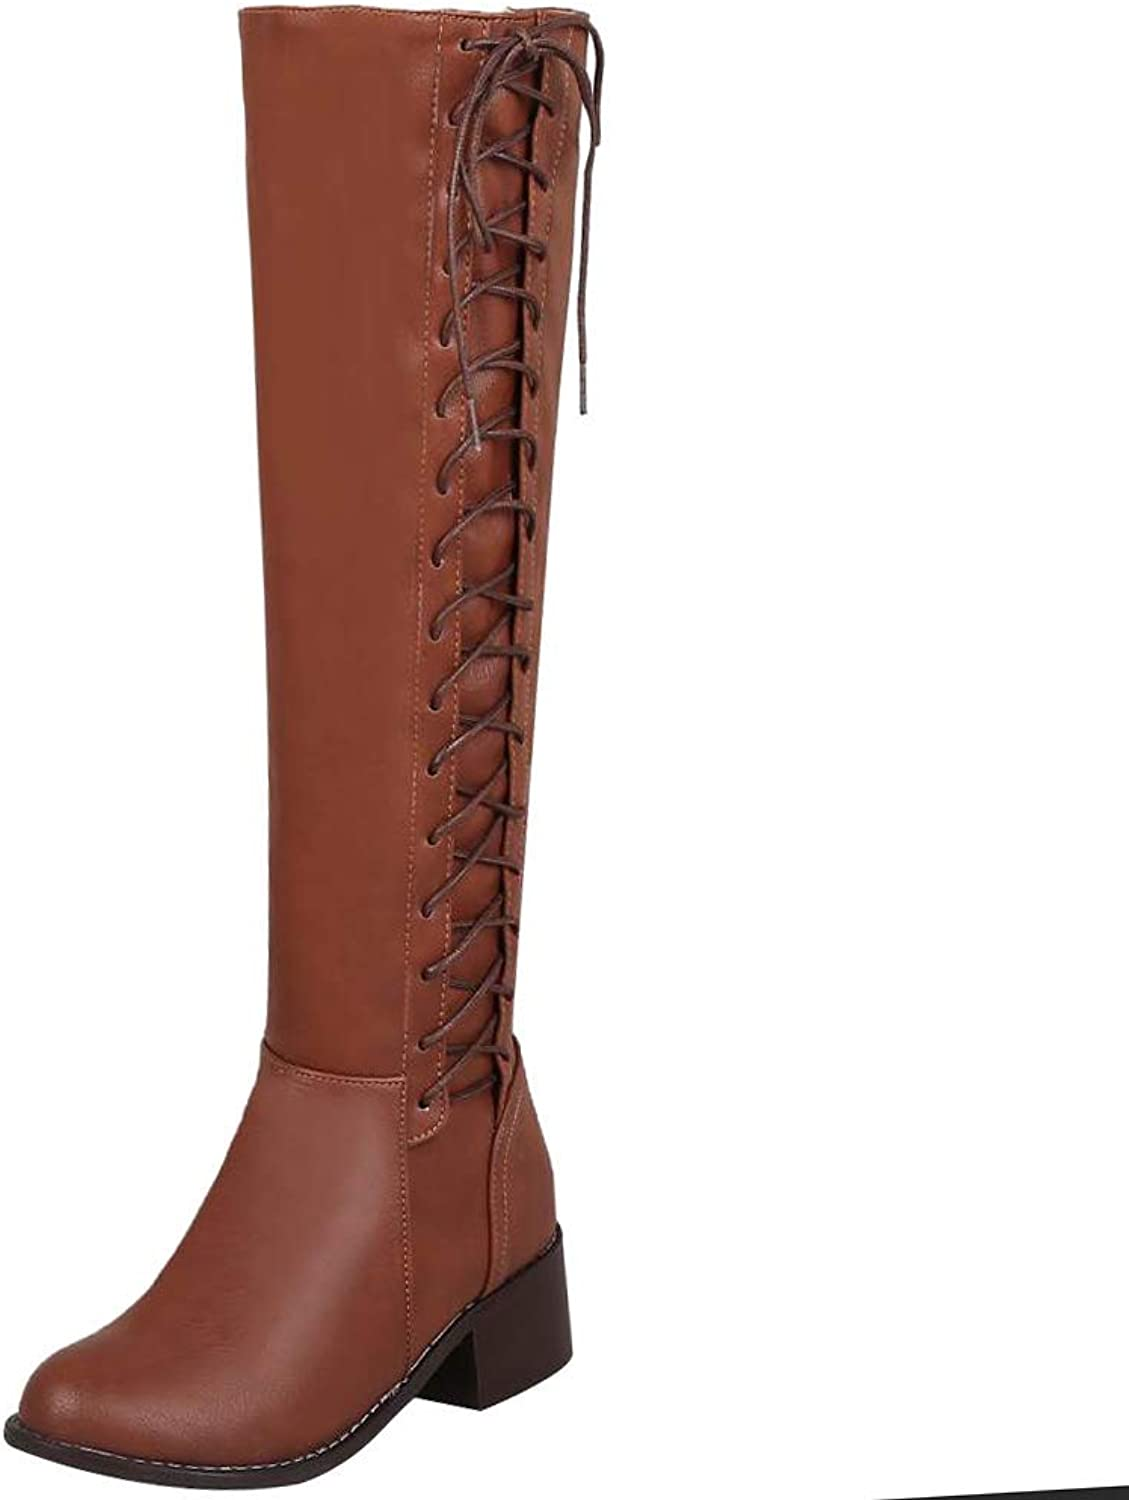 Unm Women's Fashion Low Heels Knee High Boots Zipper